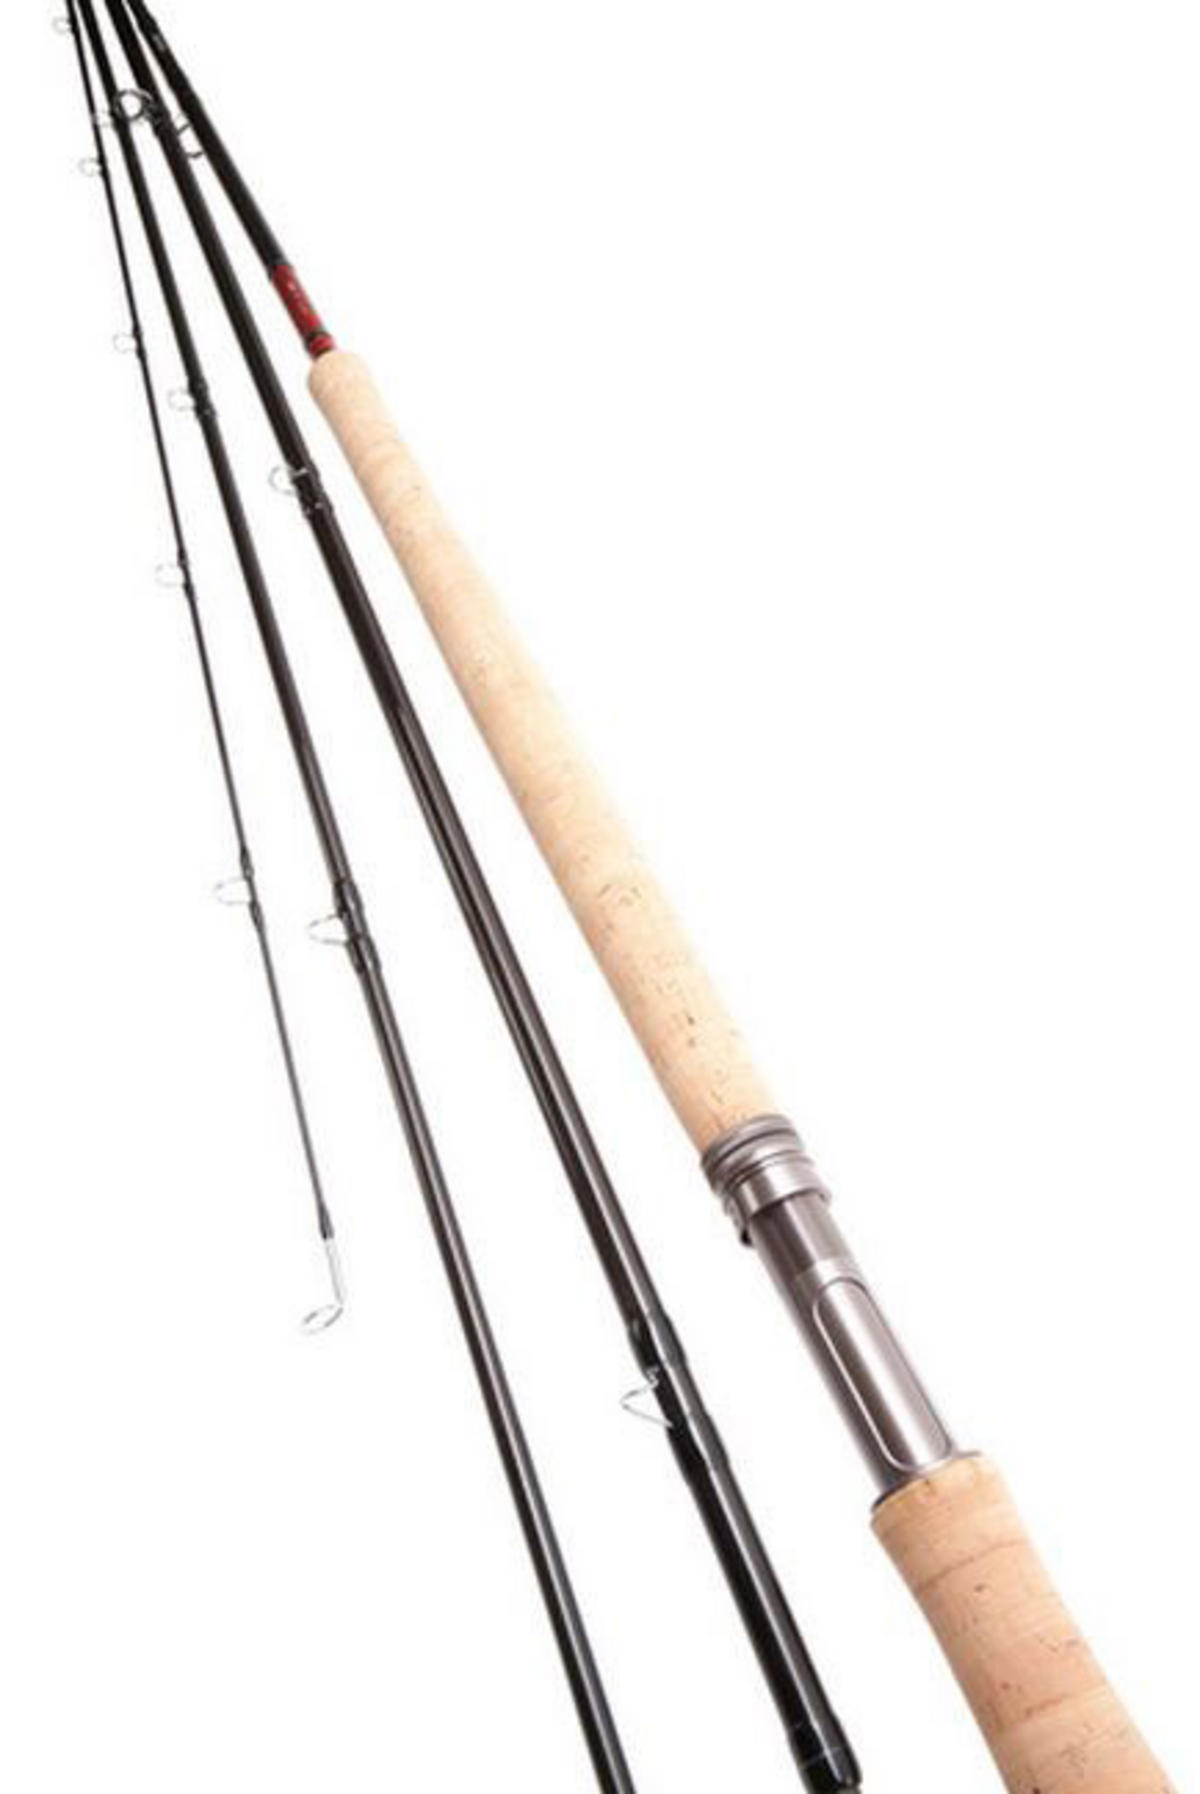 EX DISPLAY DAIWA LEXA SALMON FLY FISHING ROD 15' #10/11 LXSF151011-AU